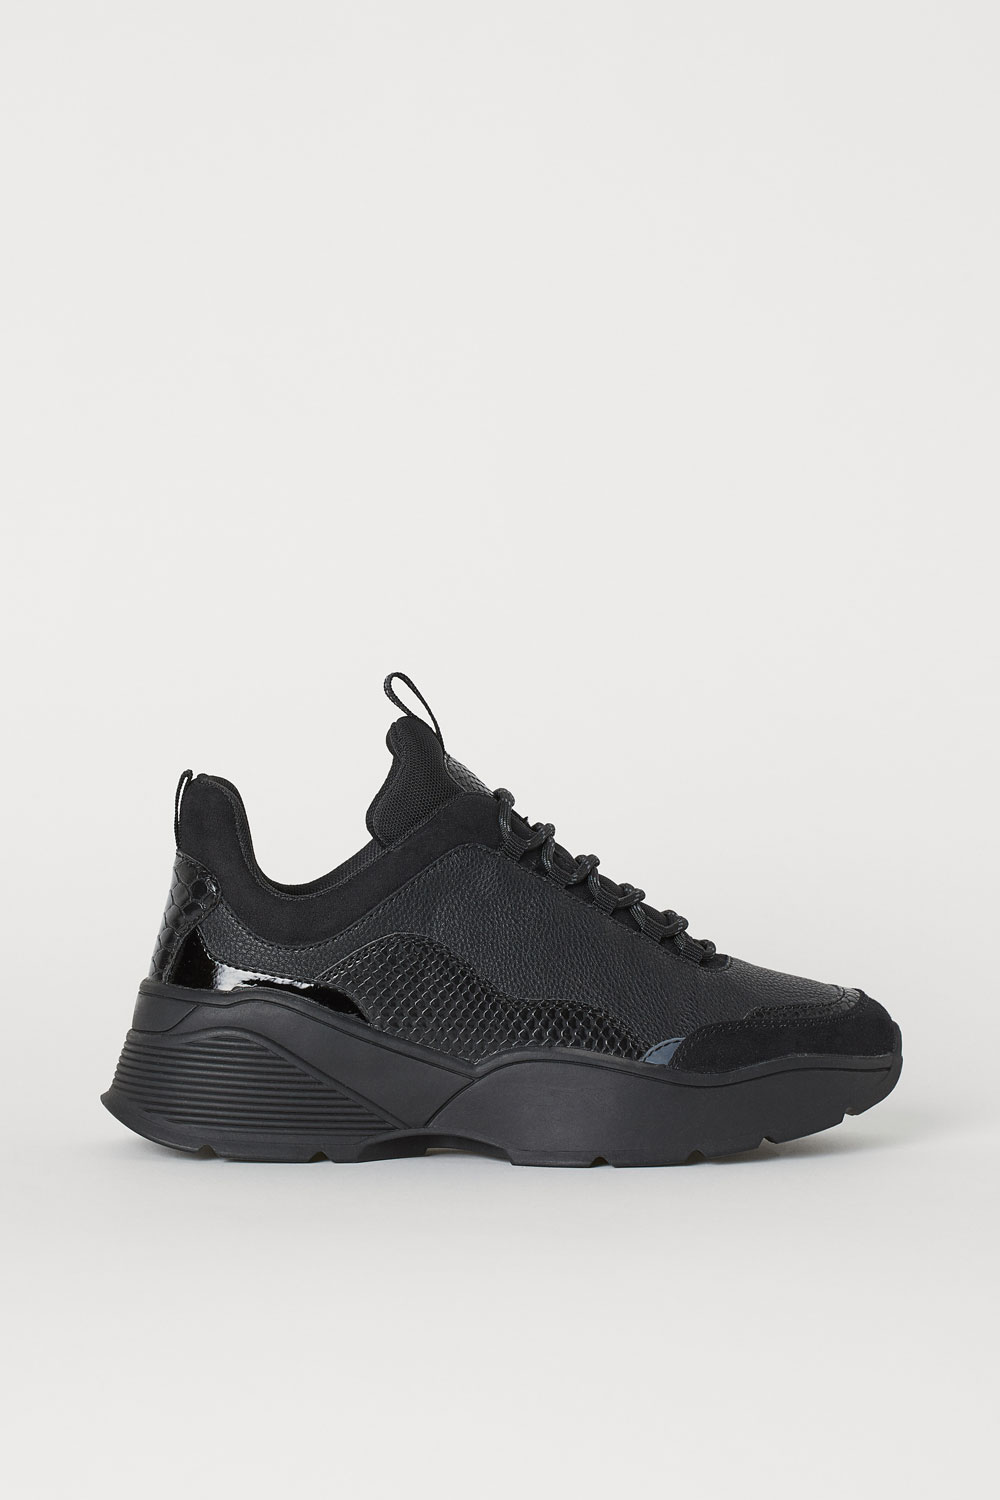 H&M black trainers, £29.99/AED132.49